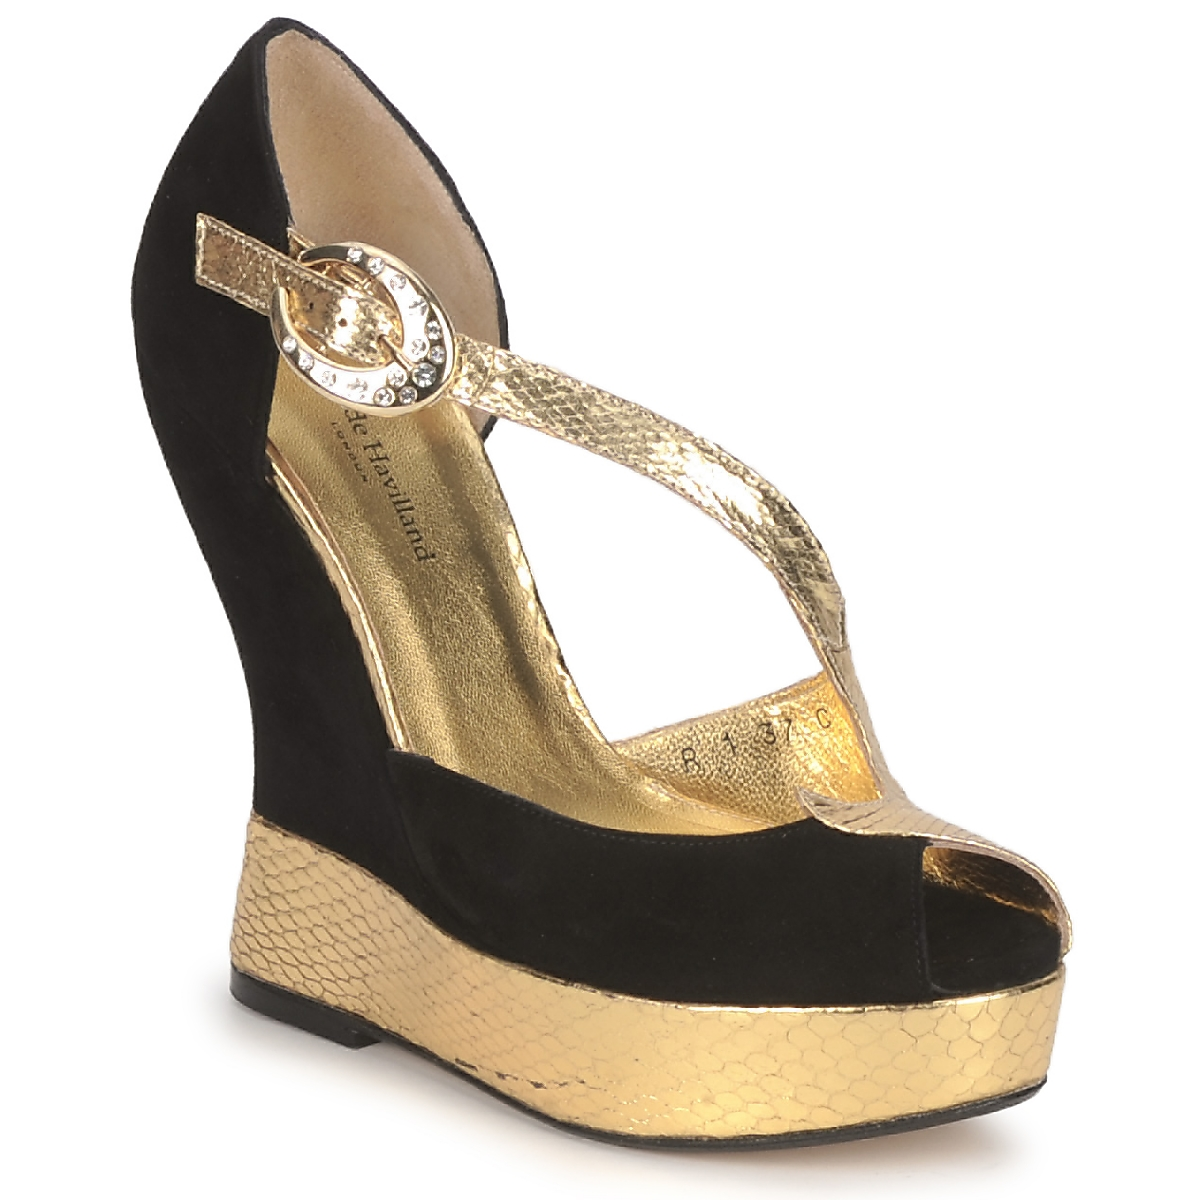 Terry de Havilland PENNY Preto-dourado